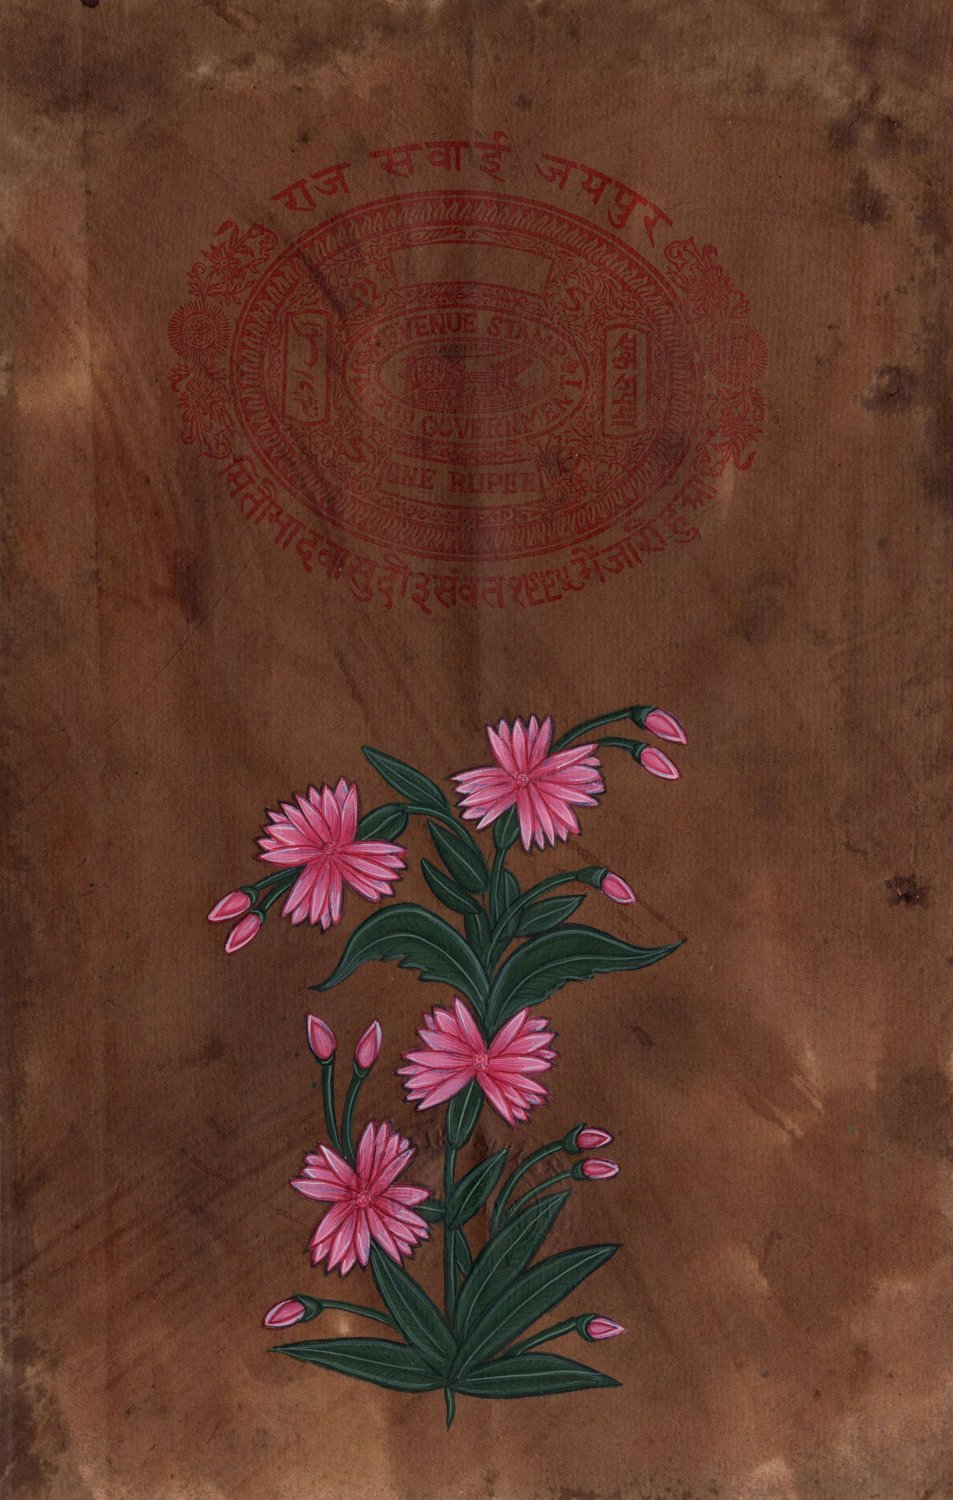 Indian Floral Miniature Artwork Handmade Old Stamp Paper Mughal Flower Painting